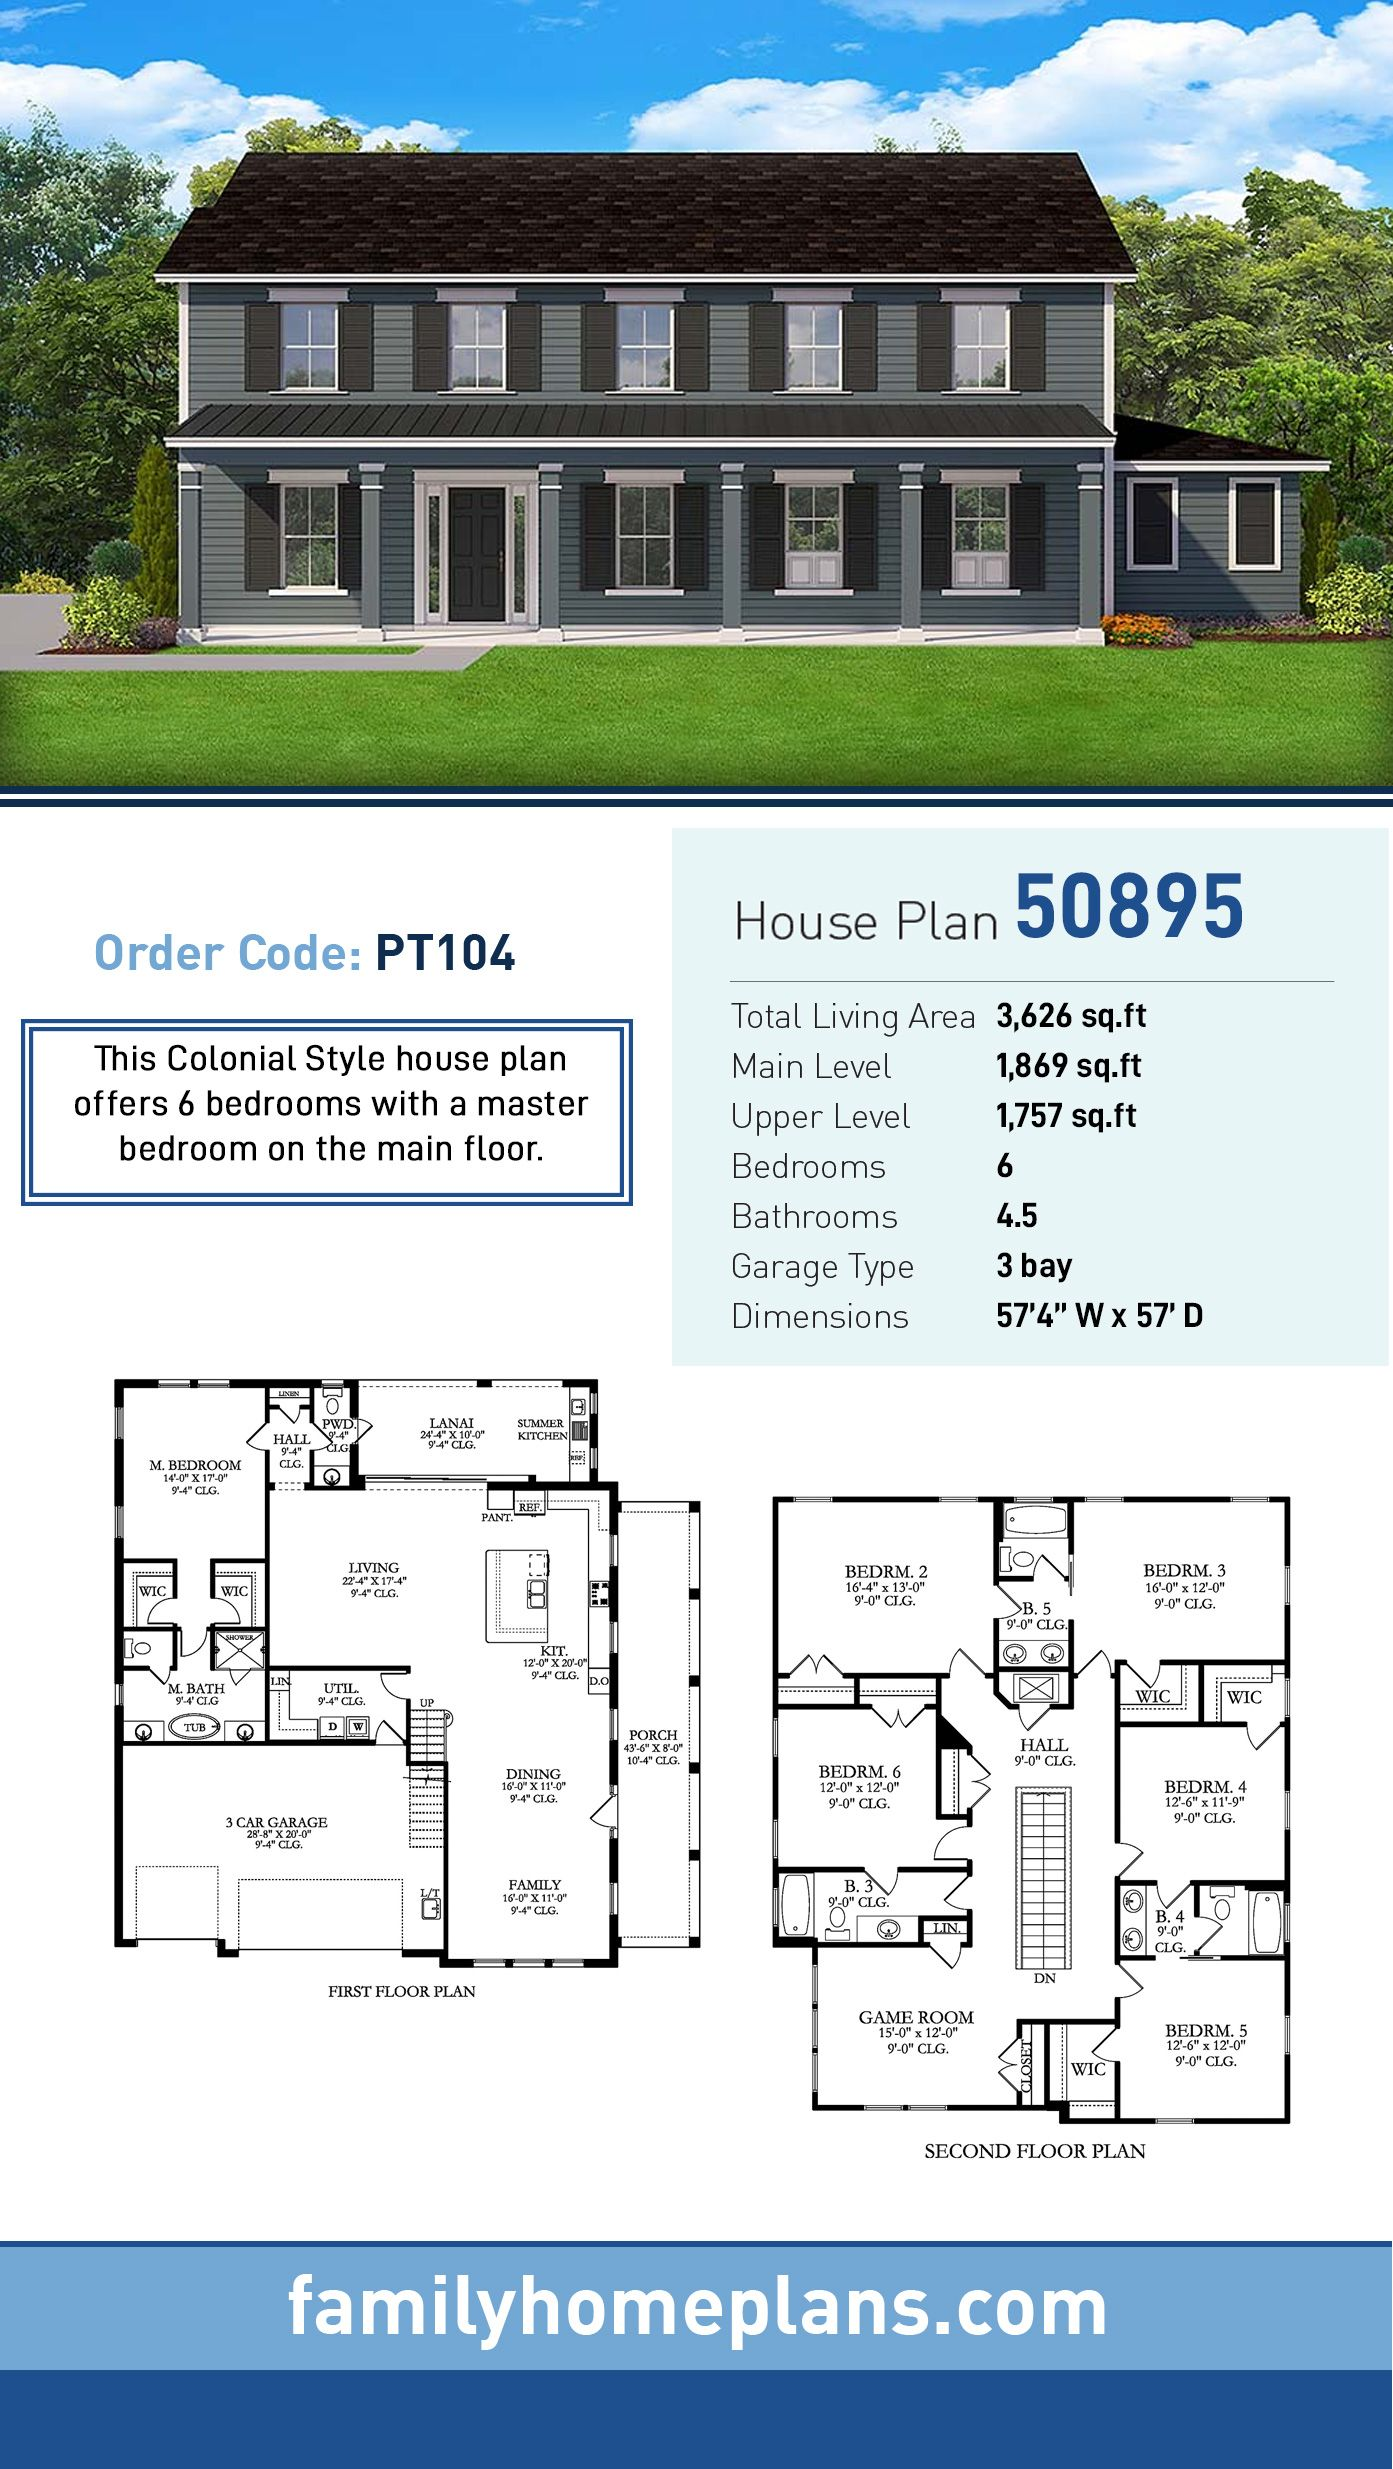 Traditional Style House Plan 50895 With 6 Bed 5 Bath 3 Car Garage Colonial House Plans House Plans Craftsman House Plans